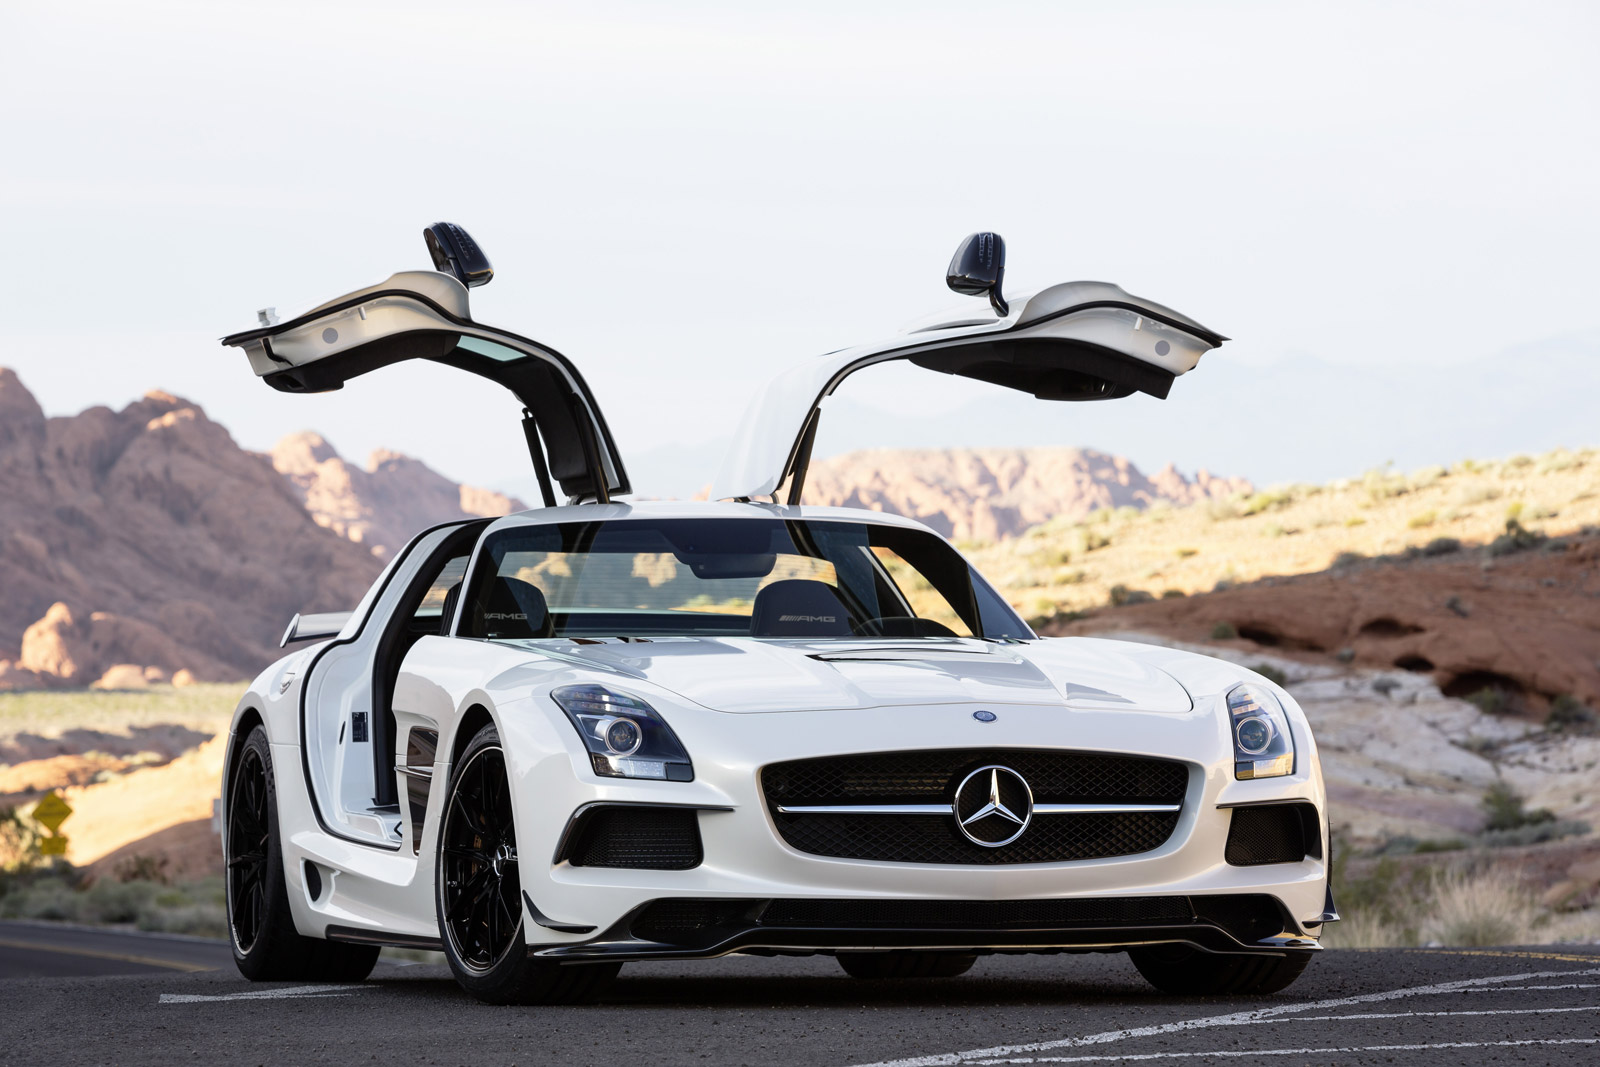 Grab The Admirable Features Of Latest Mercedes Benz Sls Amg